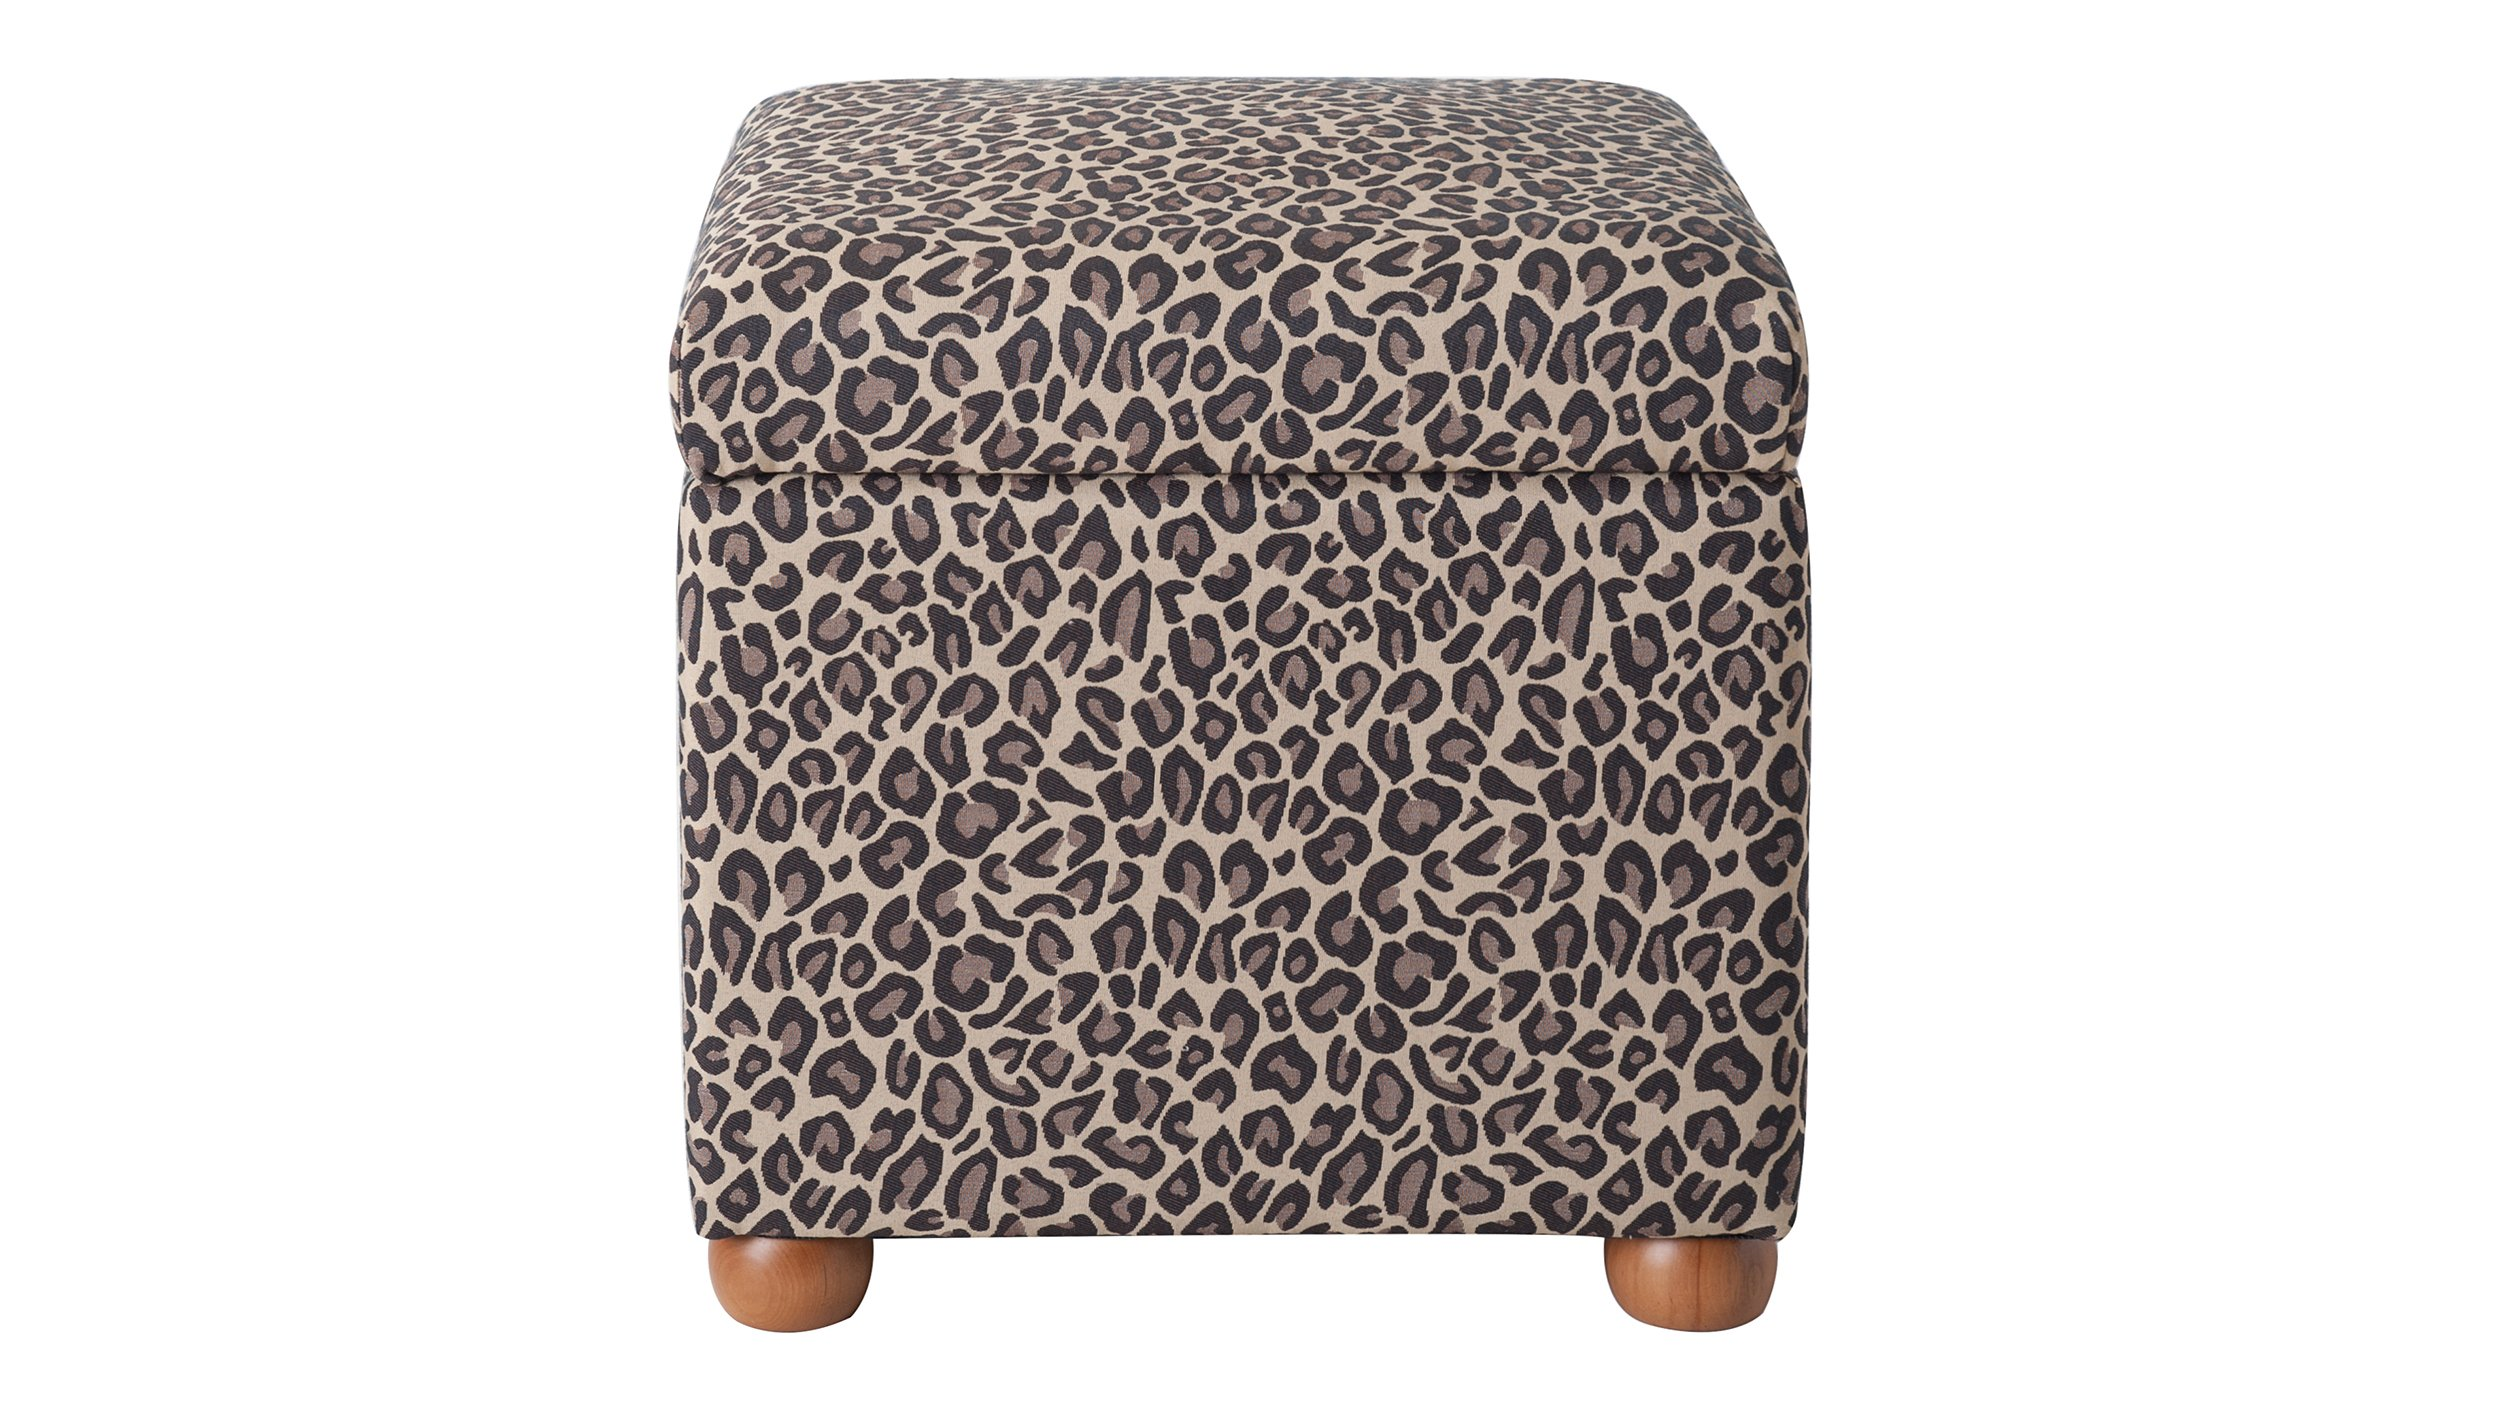 Jennifer Taylor Home 2319-655 Jacob Storage Cube Collection Modern Fabric Upholstered Animal Print Ottoman, Multi-Colored, Multicolor